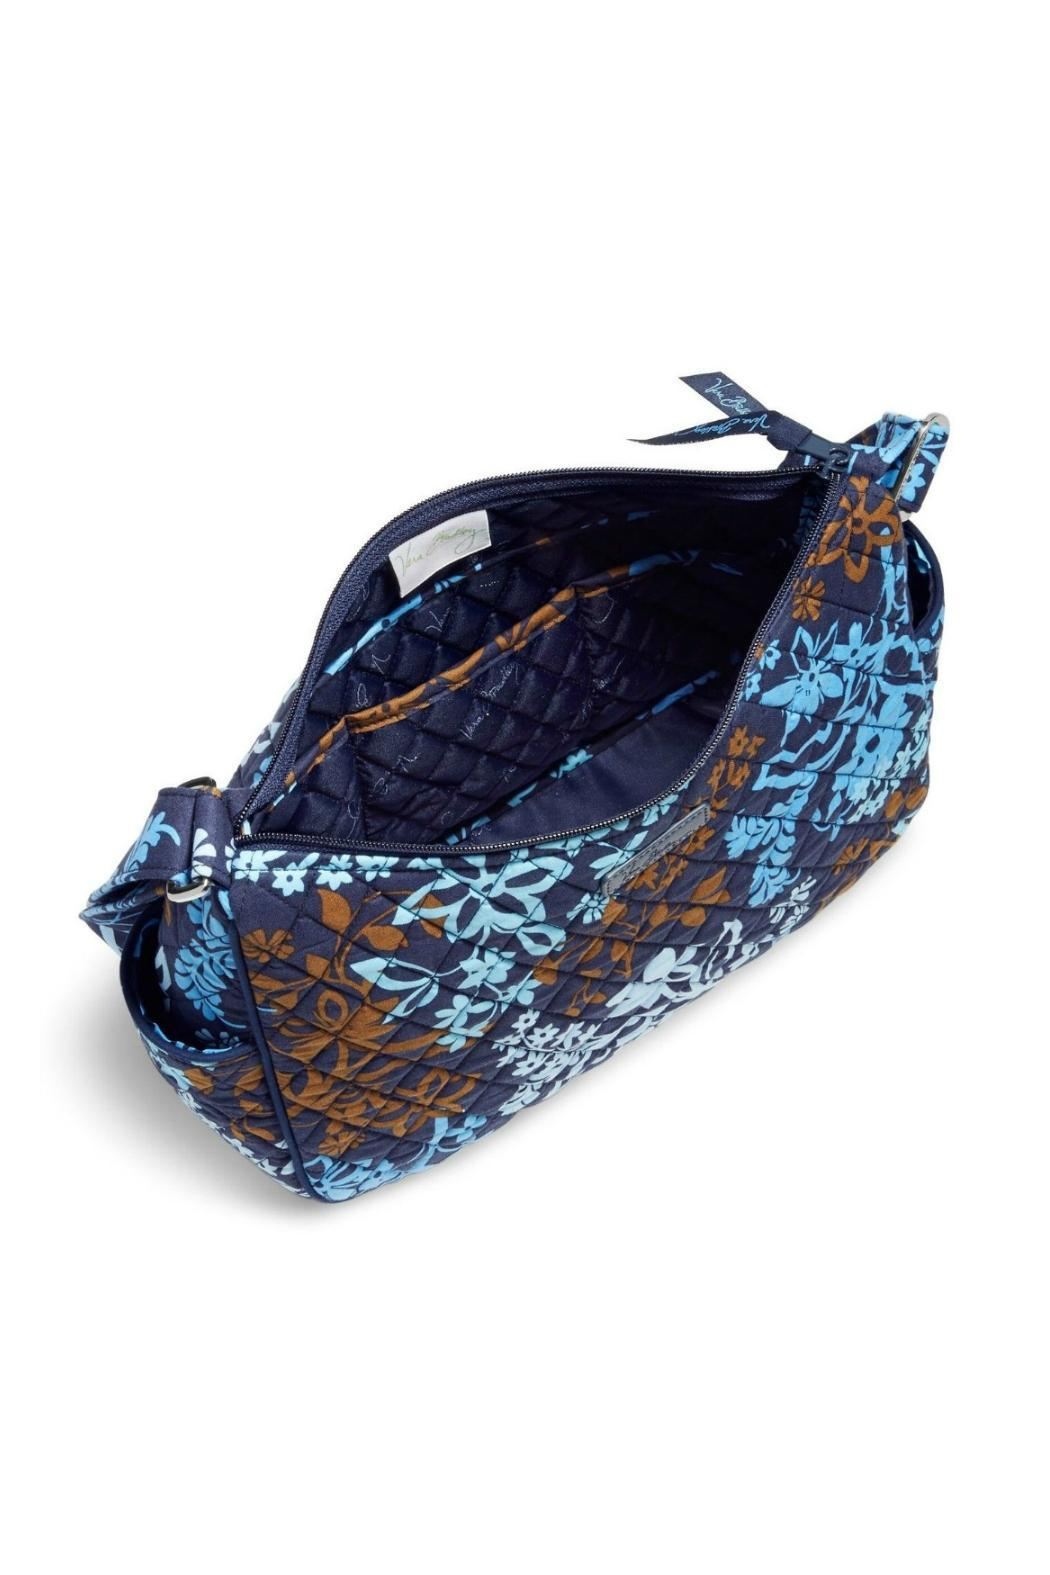 Buy Vera Bradley Carry It All Wristlet (Tea Garden) and other Wristlets at admin-gh.ga Our wide selection is eligible for free shipping and free returns.